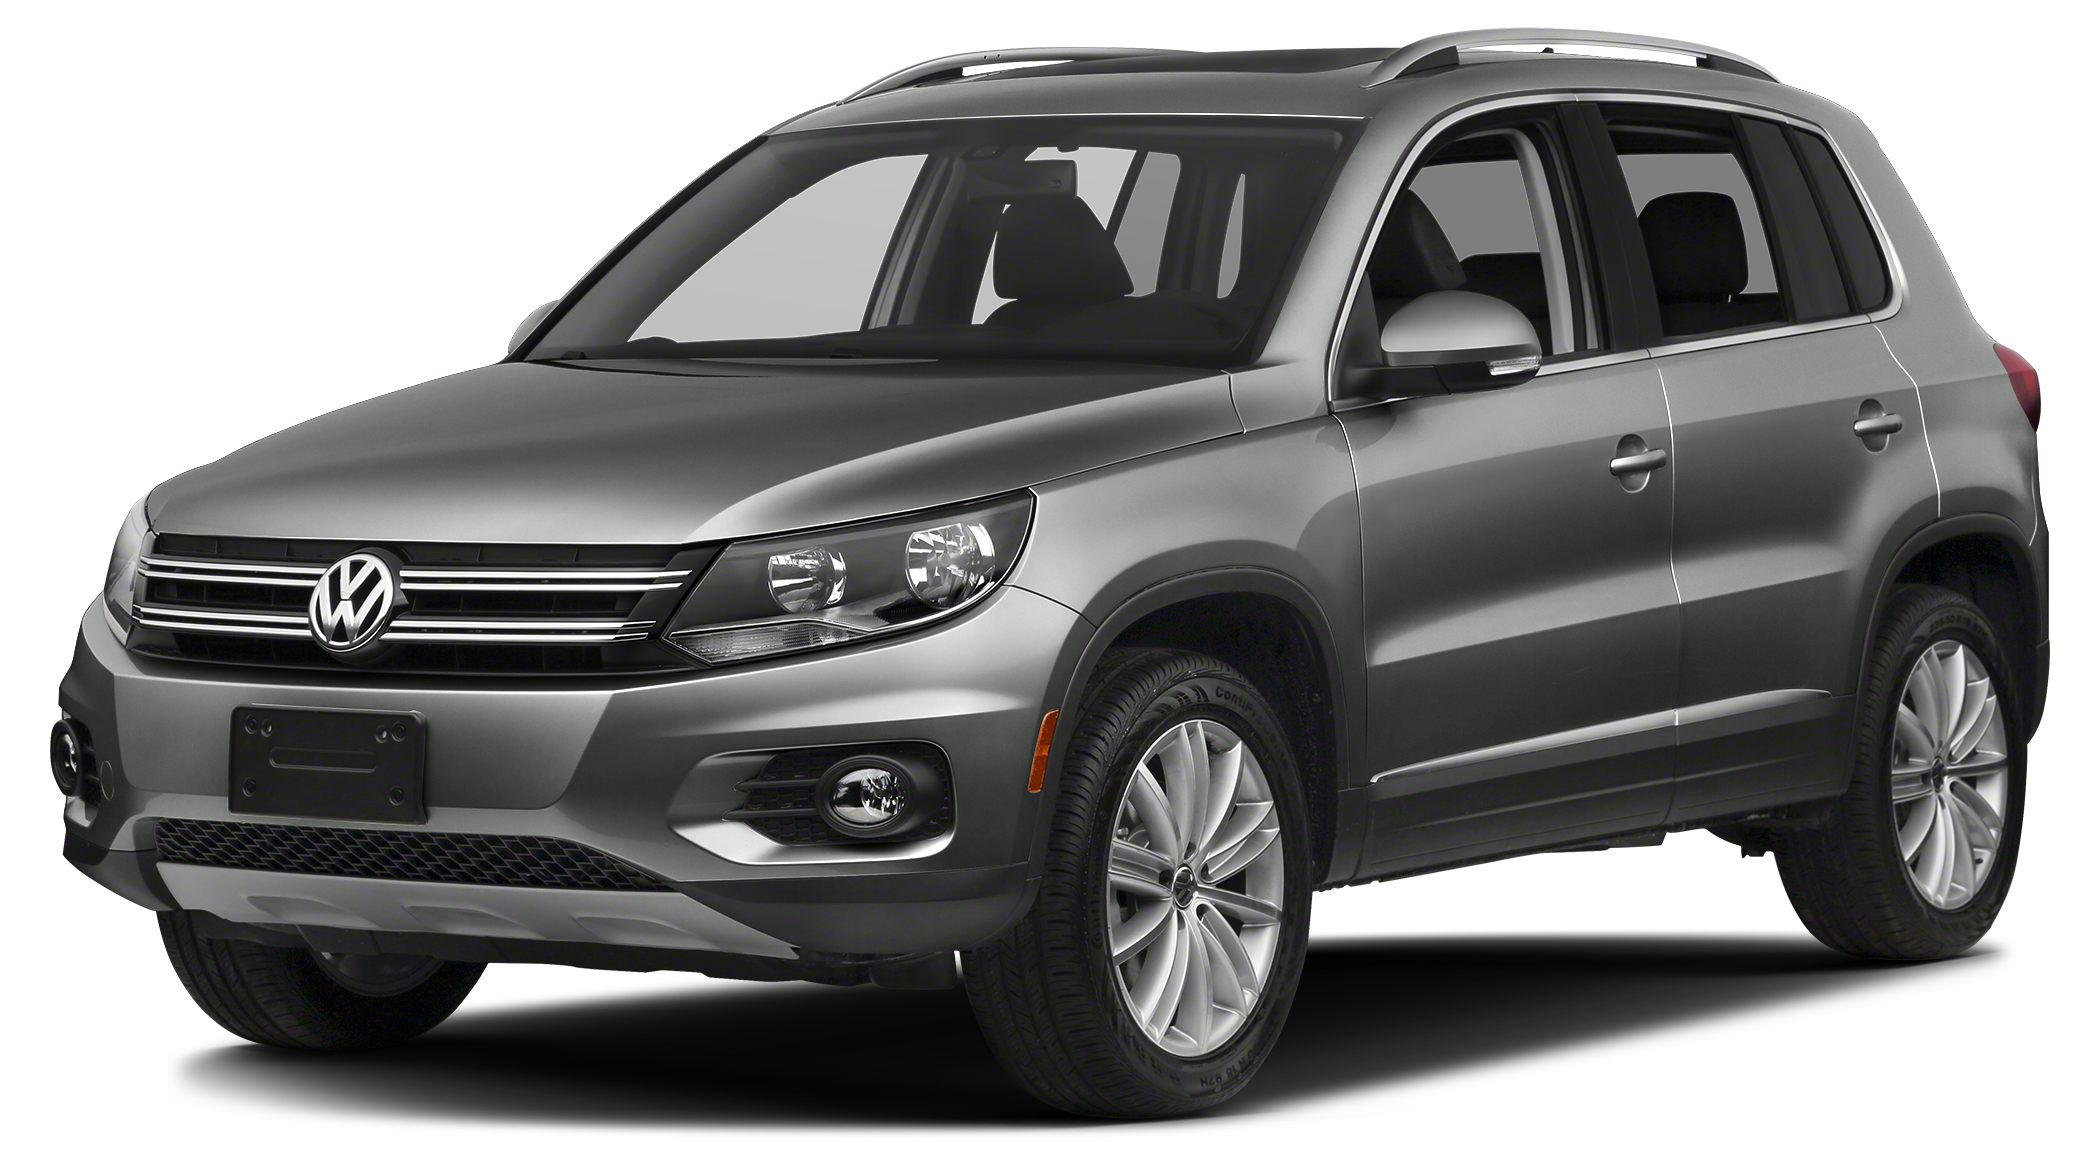 2012 Volkswagen Tiguan S  WHEN IT COMES TO EXCELLENCE IN USED CAR SALES YOU KNOW YOURE AT STA